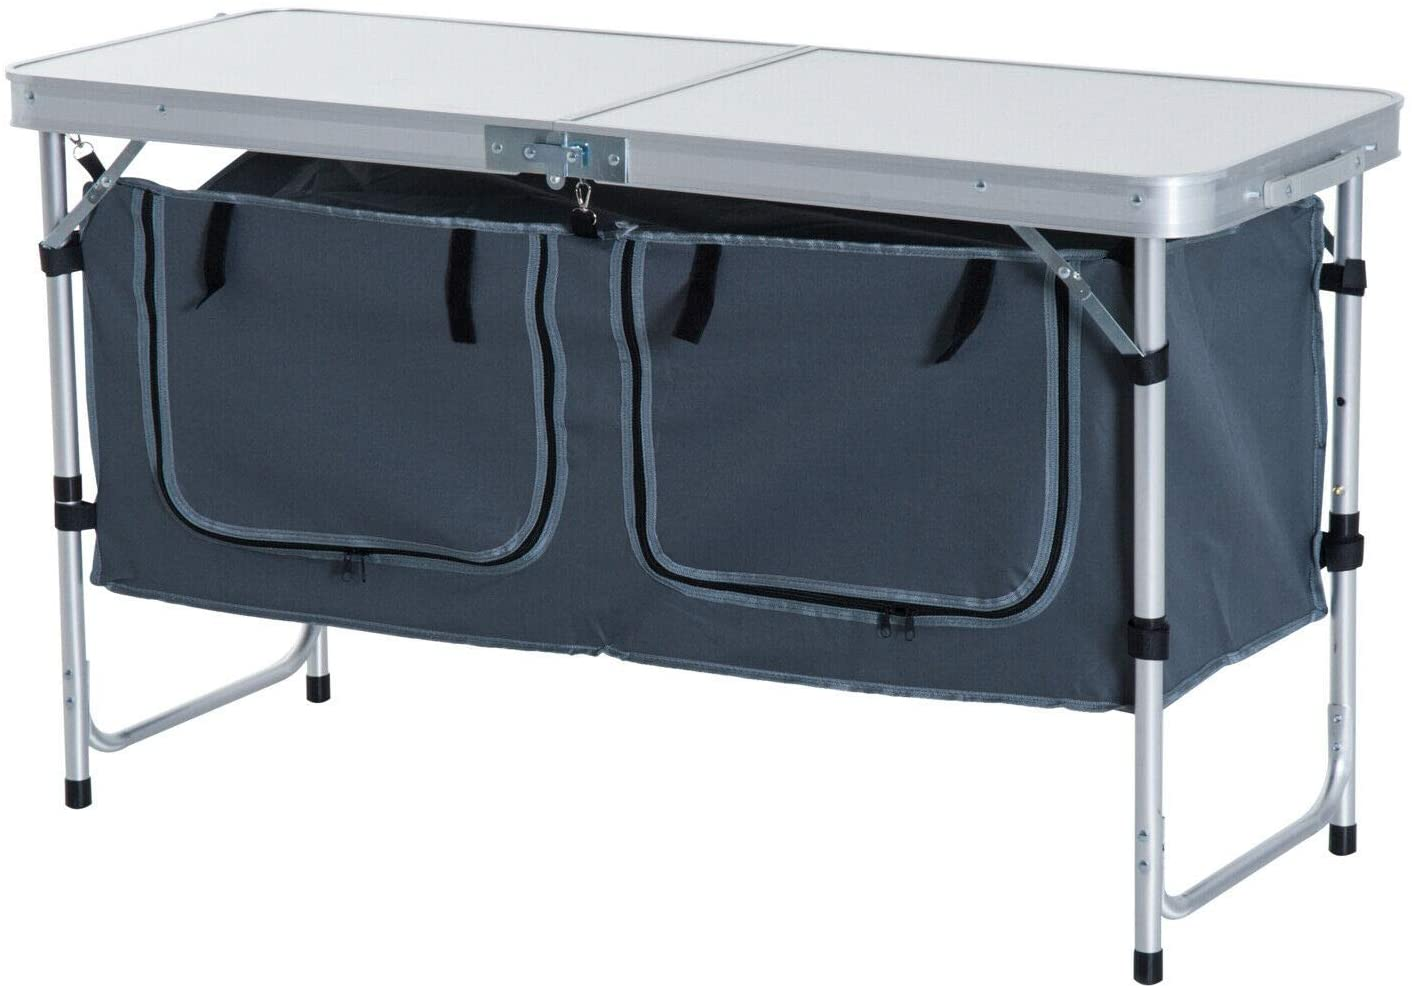 AyaMastro Outdoor Folding Camping Table with Fabric Storage Organizer